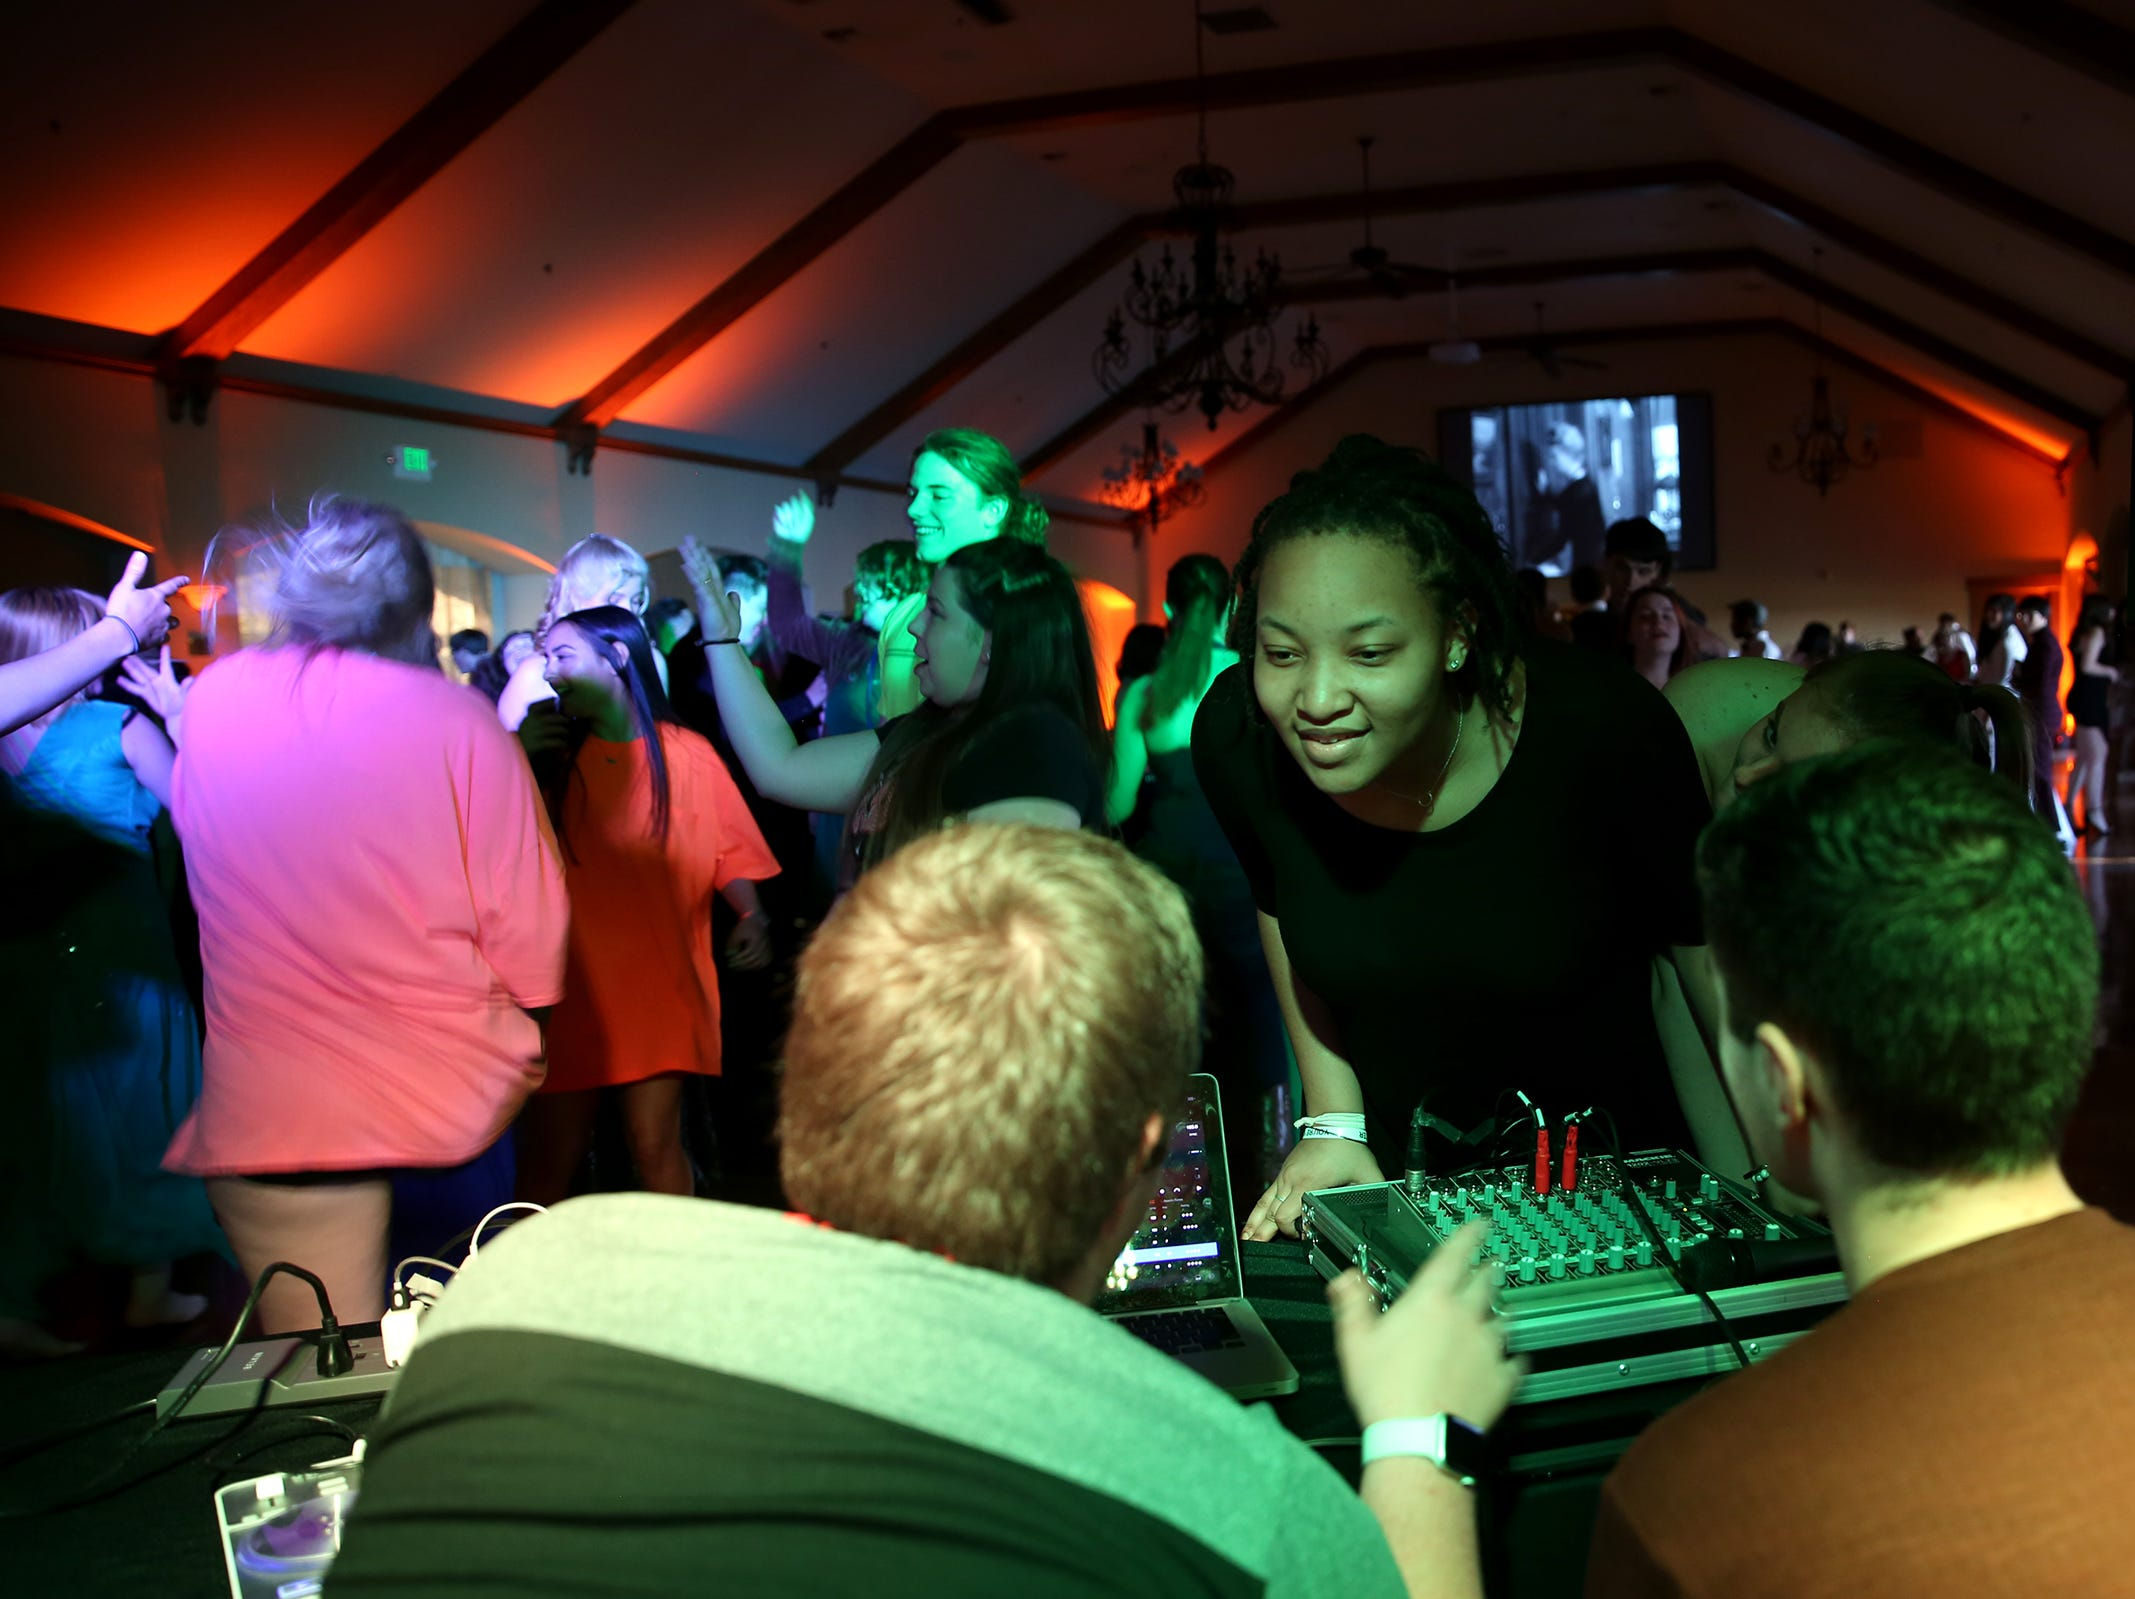 Students request songs during the Sprague High School prom at Zenith Vineyard in West Salem on May 10, 2019.